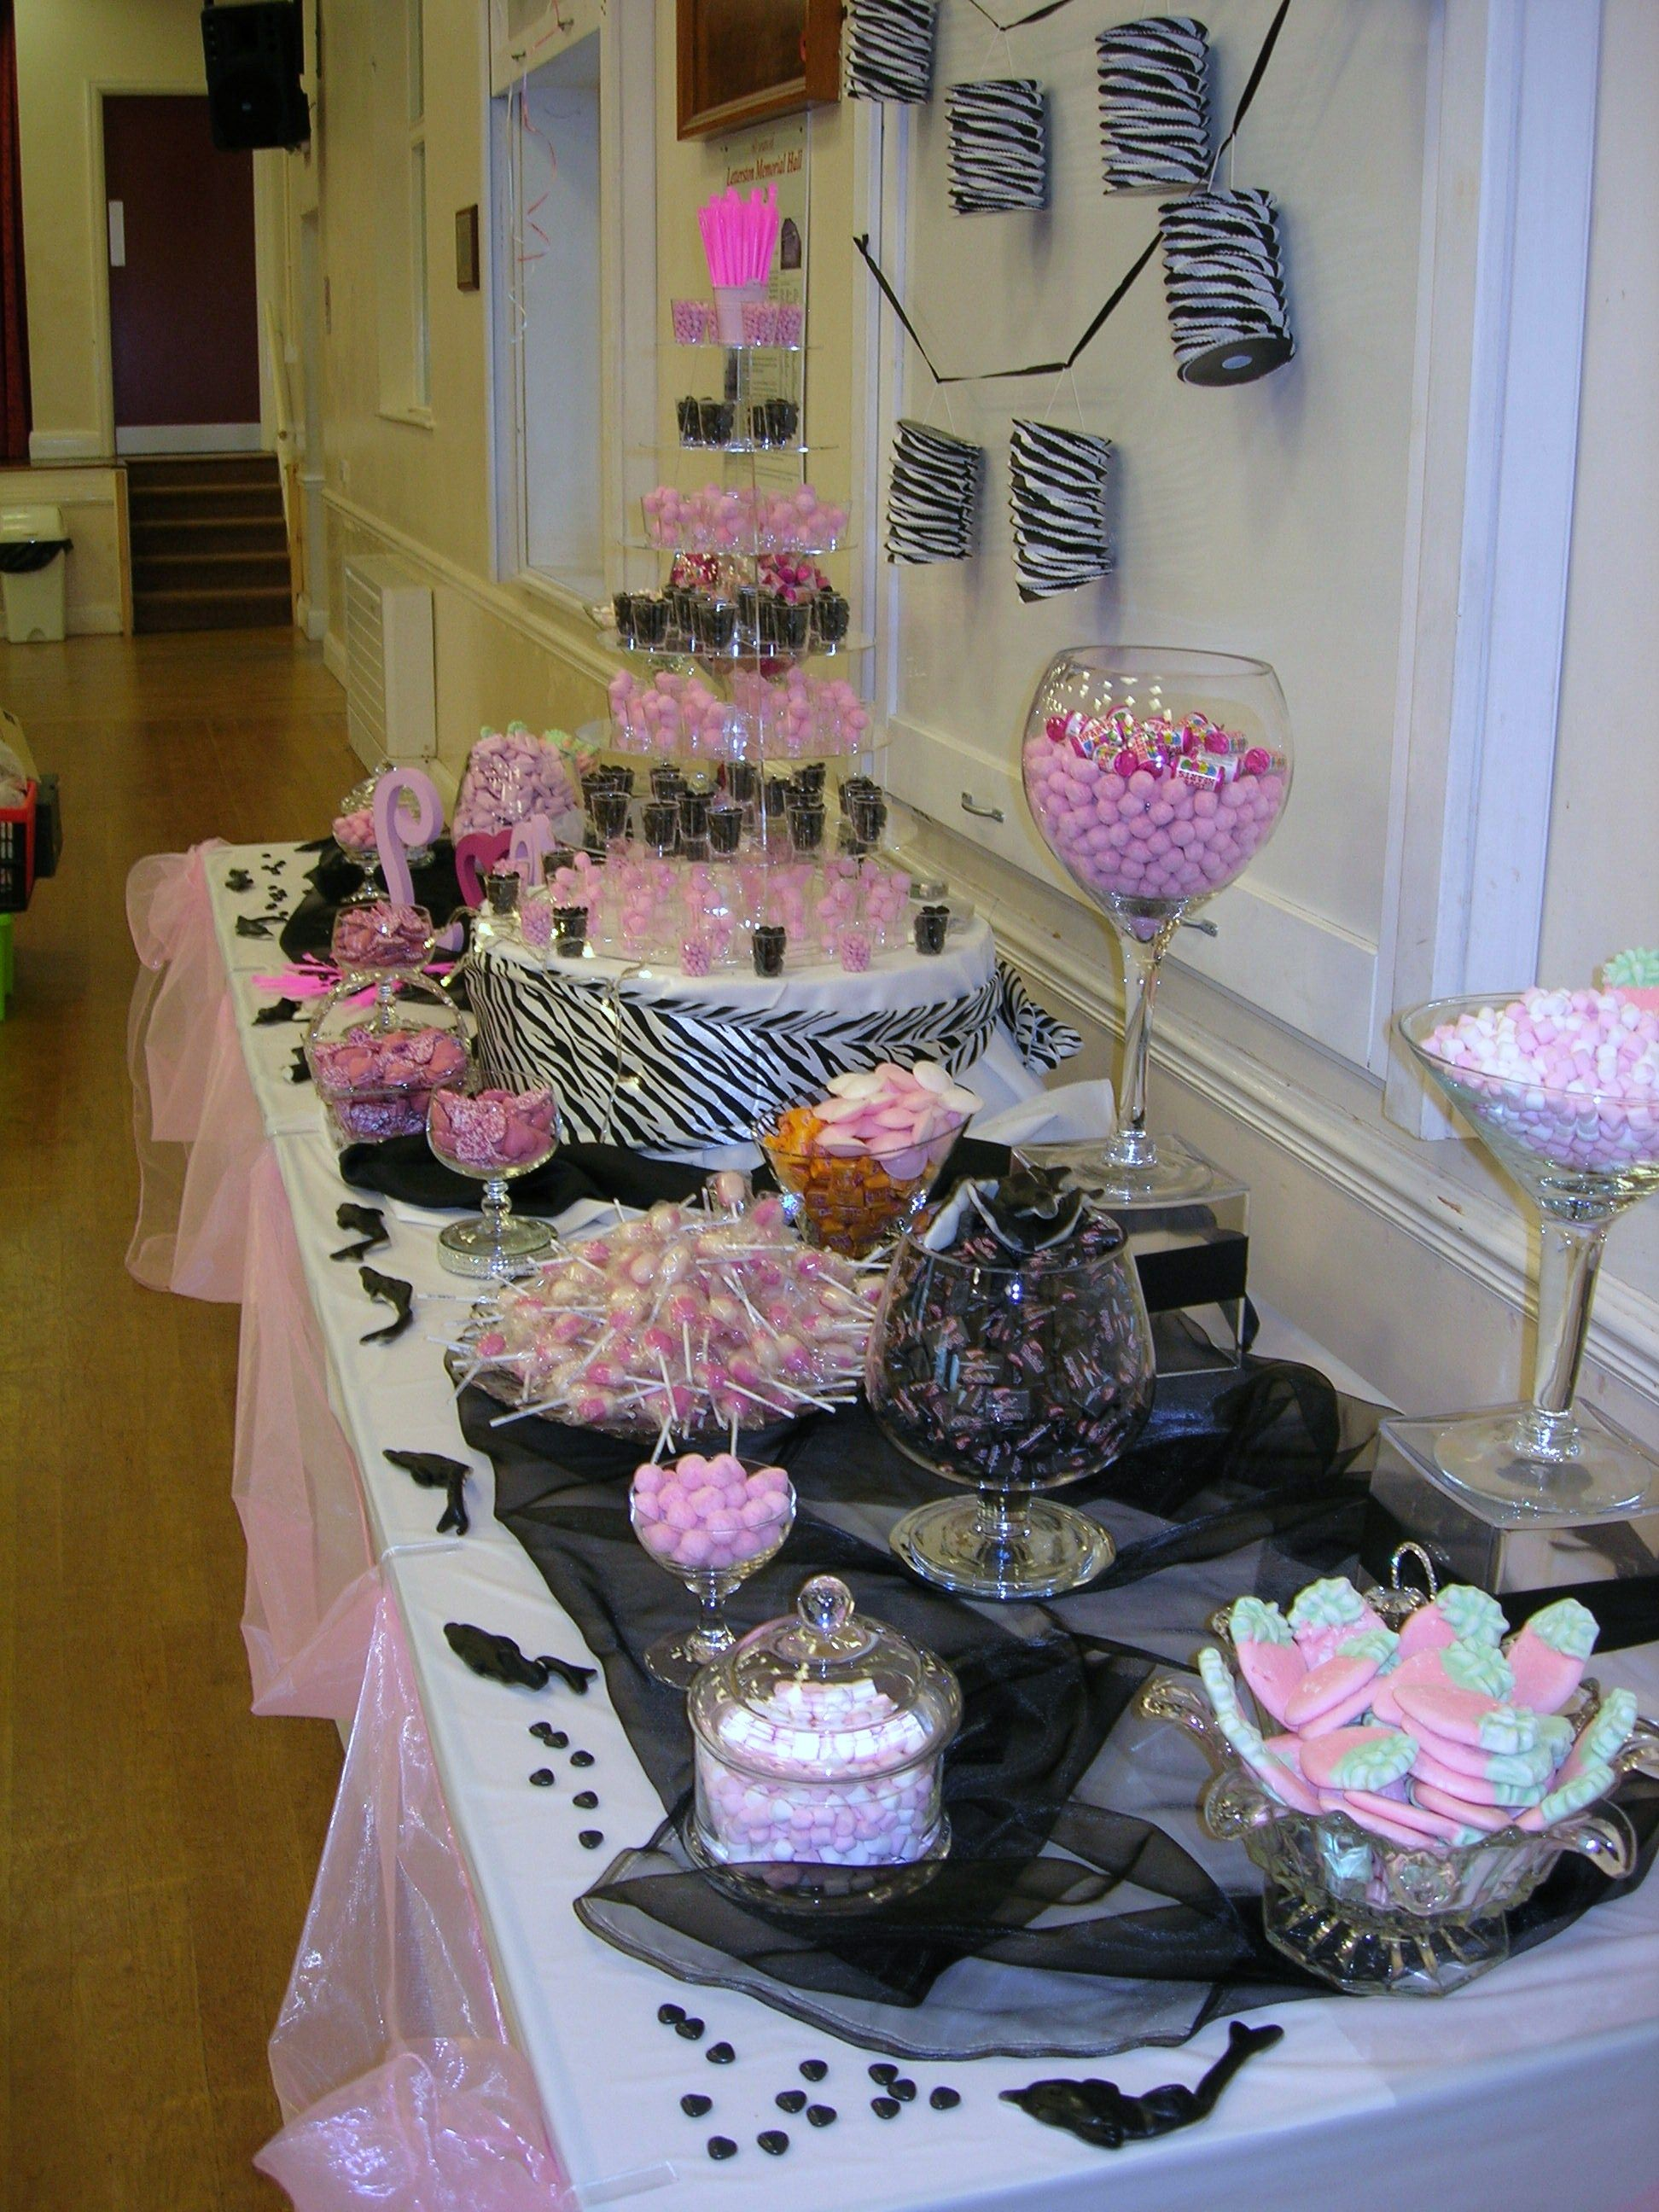 Pin by Christi Hill on Party Ideas Zebra birthday party